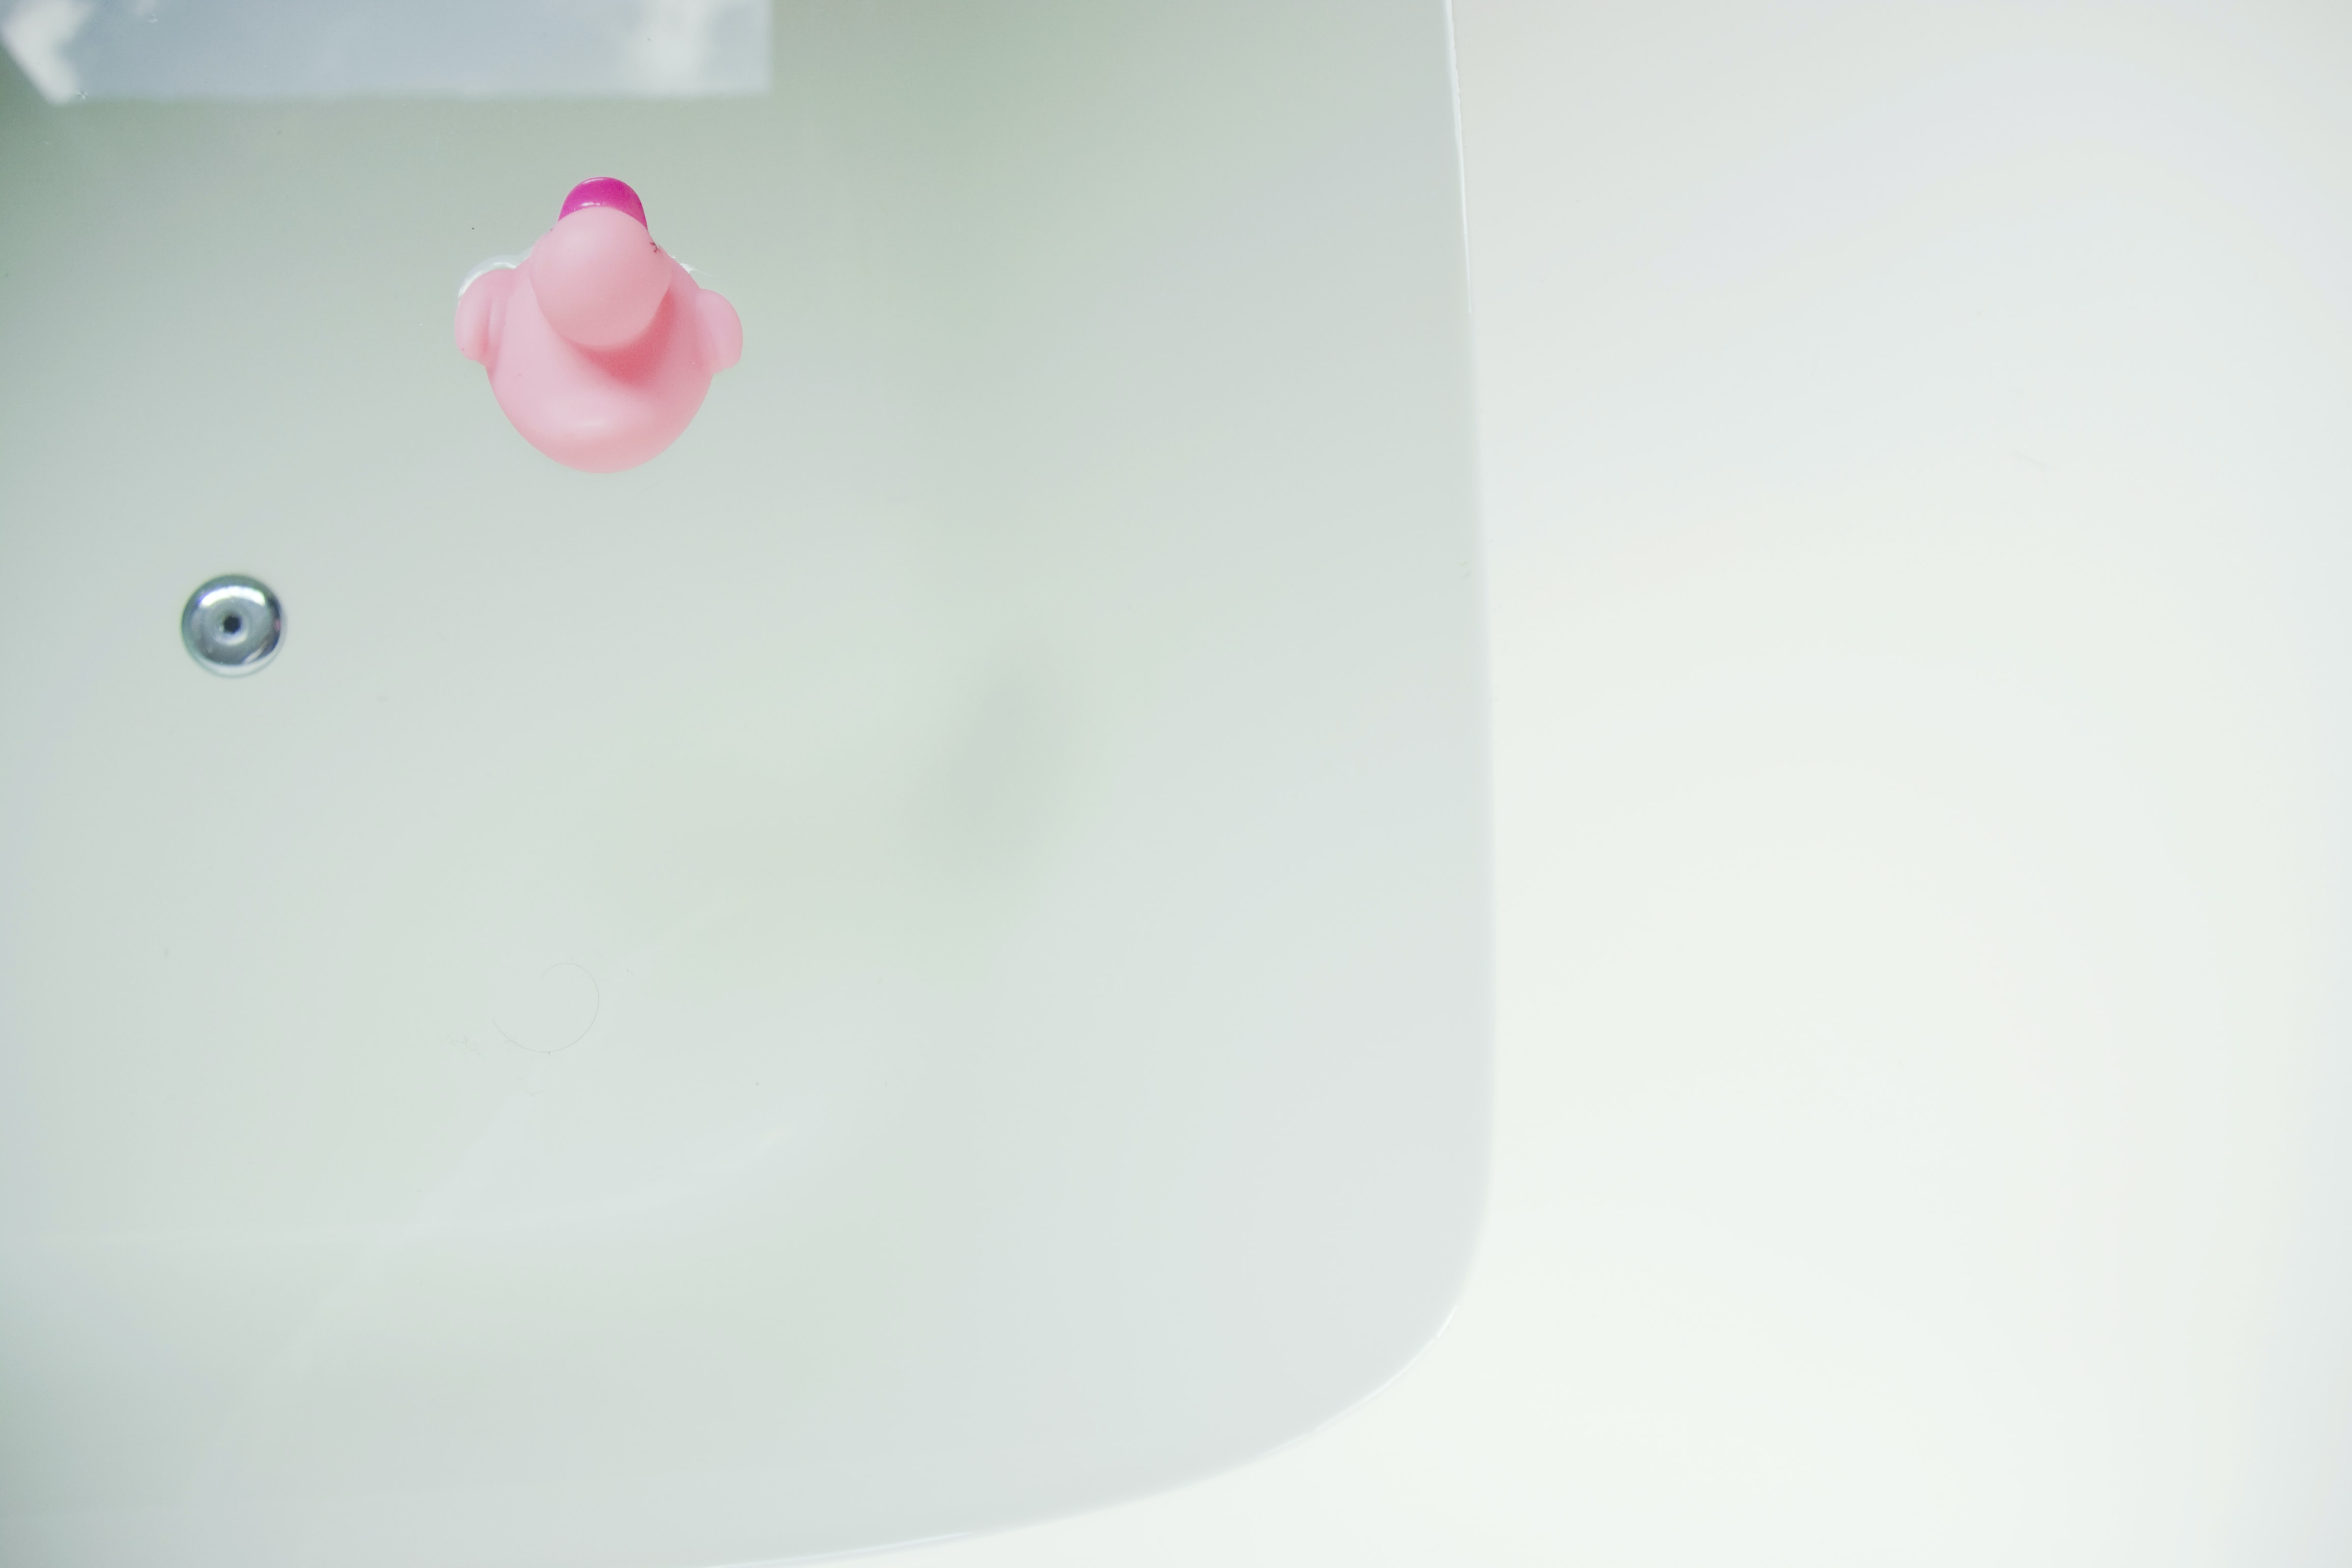 pink rubber duck on bathtub